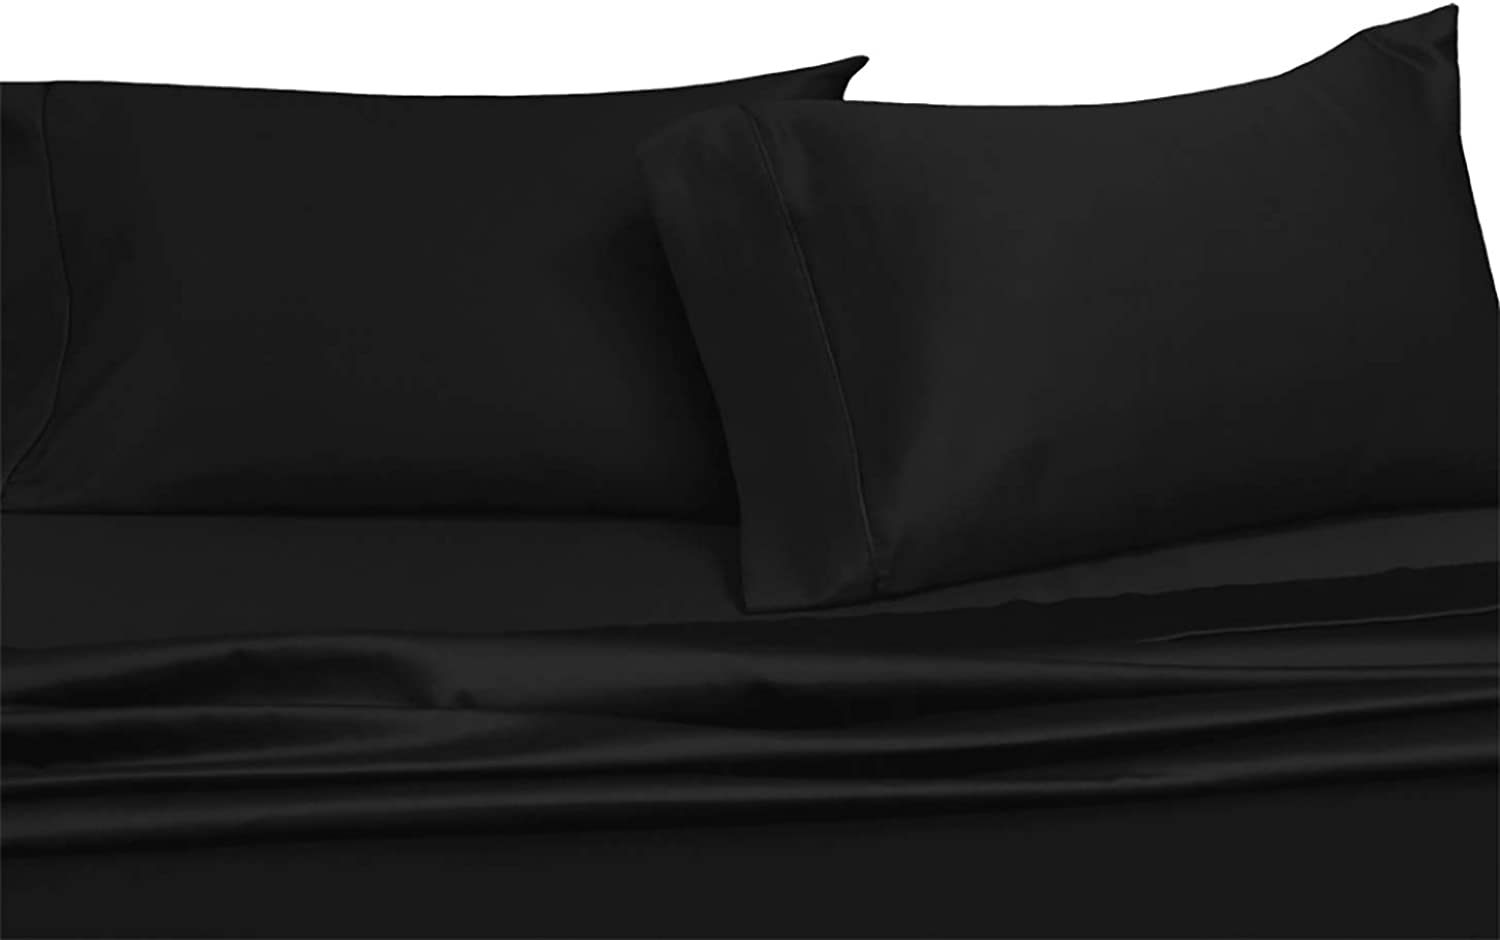 Sheetsnthings Super Deep Pocket Solid Black Queen Sheet Set 100% Cotton 600 Thread Count Fit up to 22 Inch Mattress